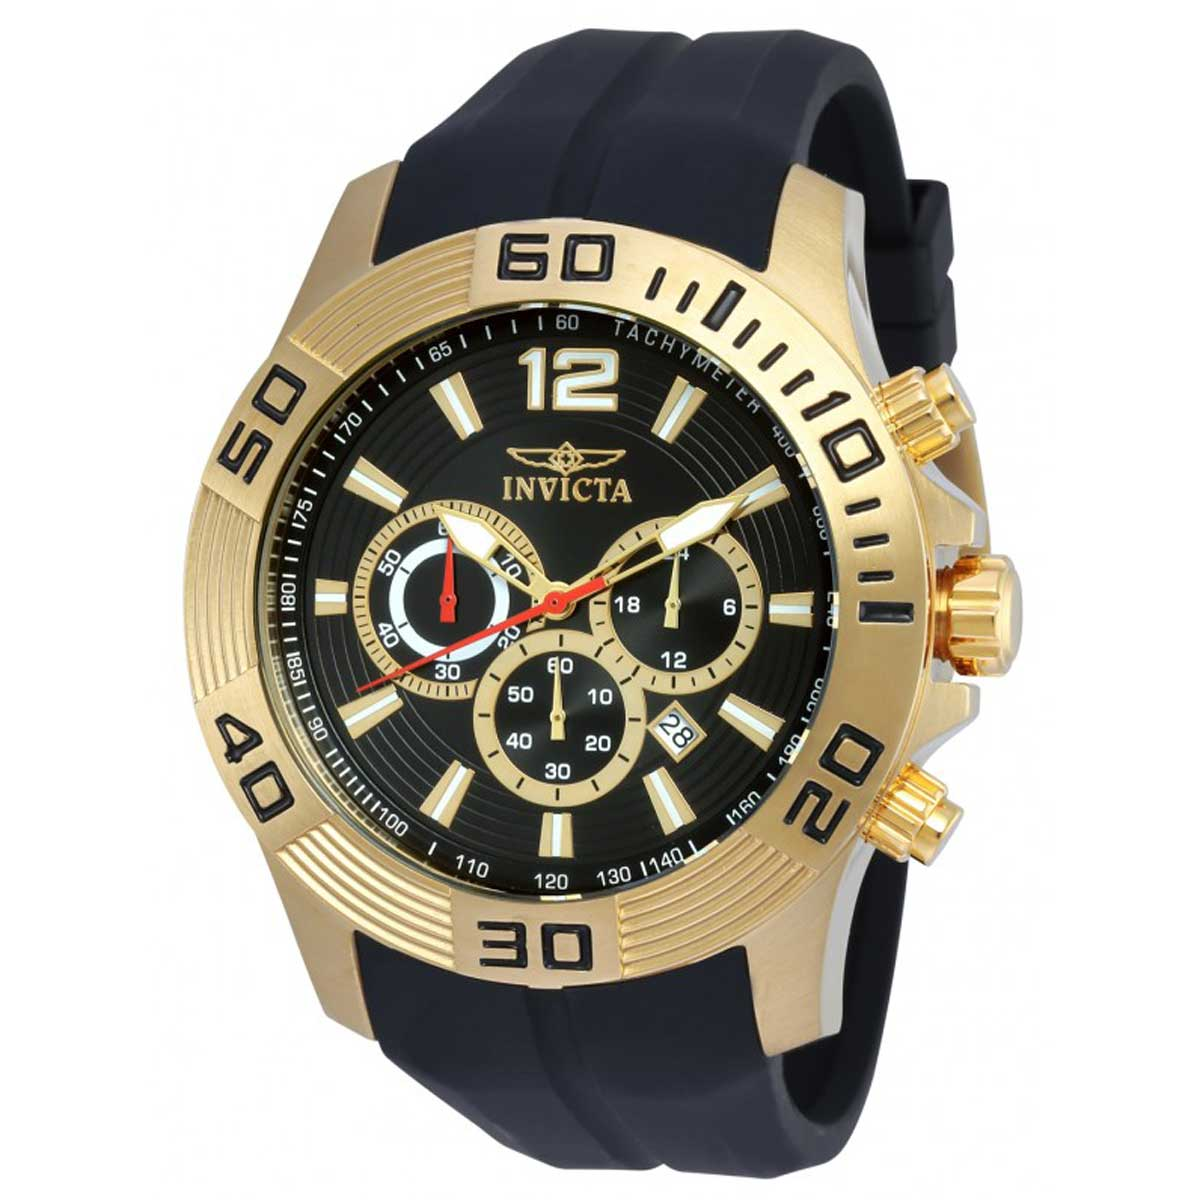 Invicta Pro Diver Chronograph Black Dial Black Silicone Mens Watch 20300